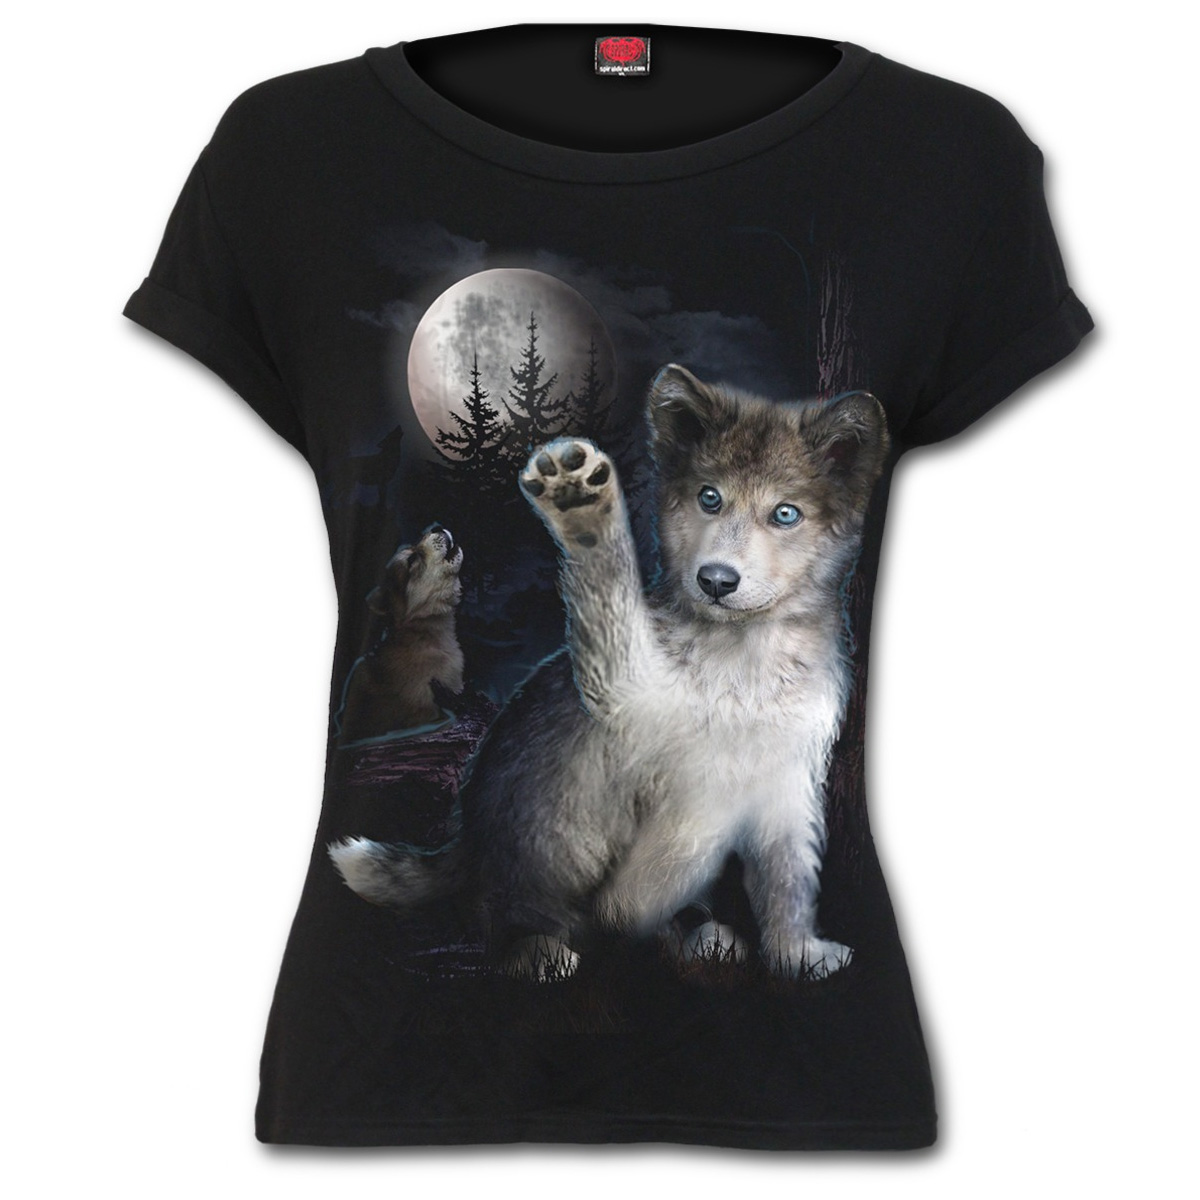 SPIRAL-DIRECT-Ladies-Black-Goth-Moon-WOLF-PUPPY-T-Shirt-Top-All-Sizes thumbnail 11